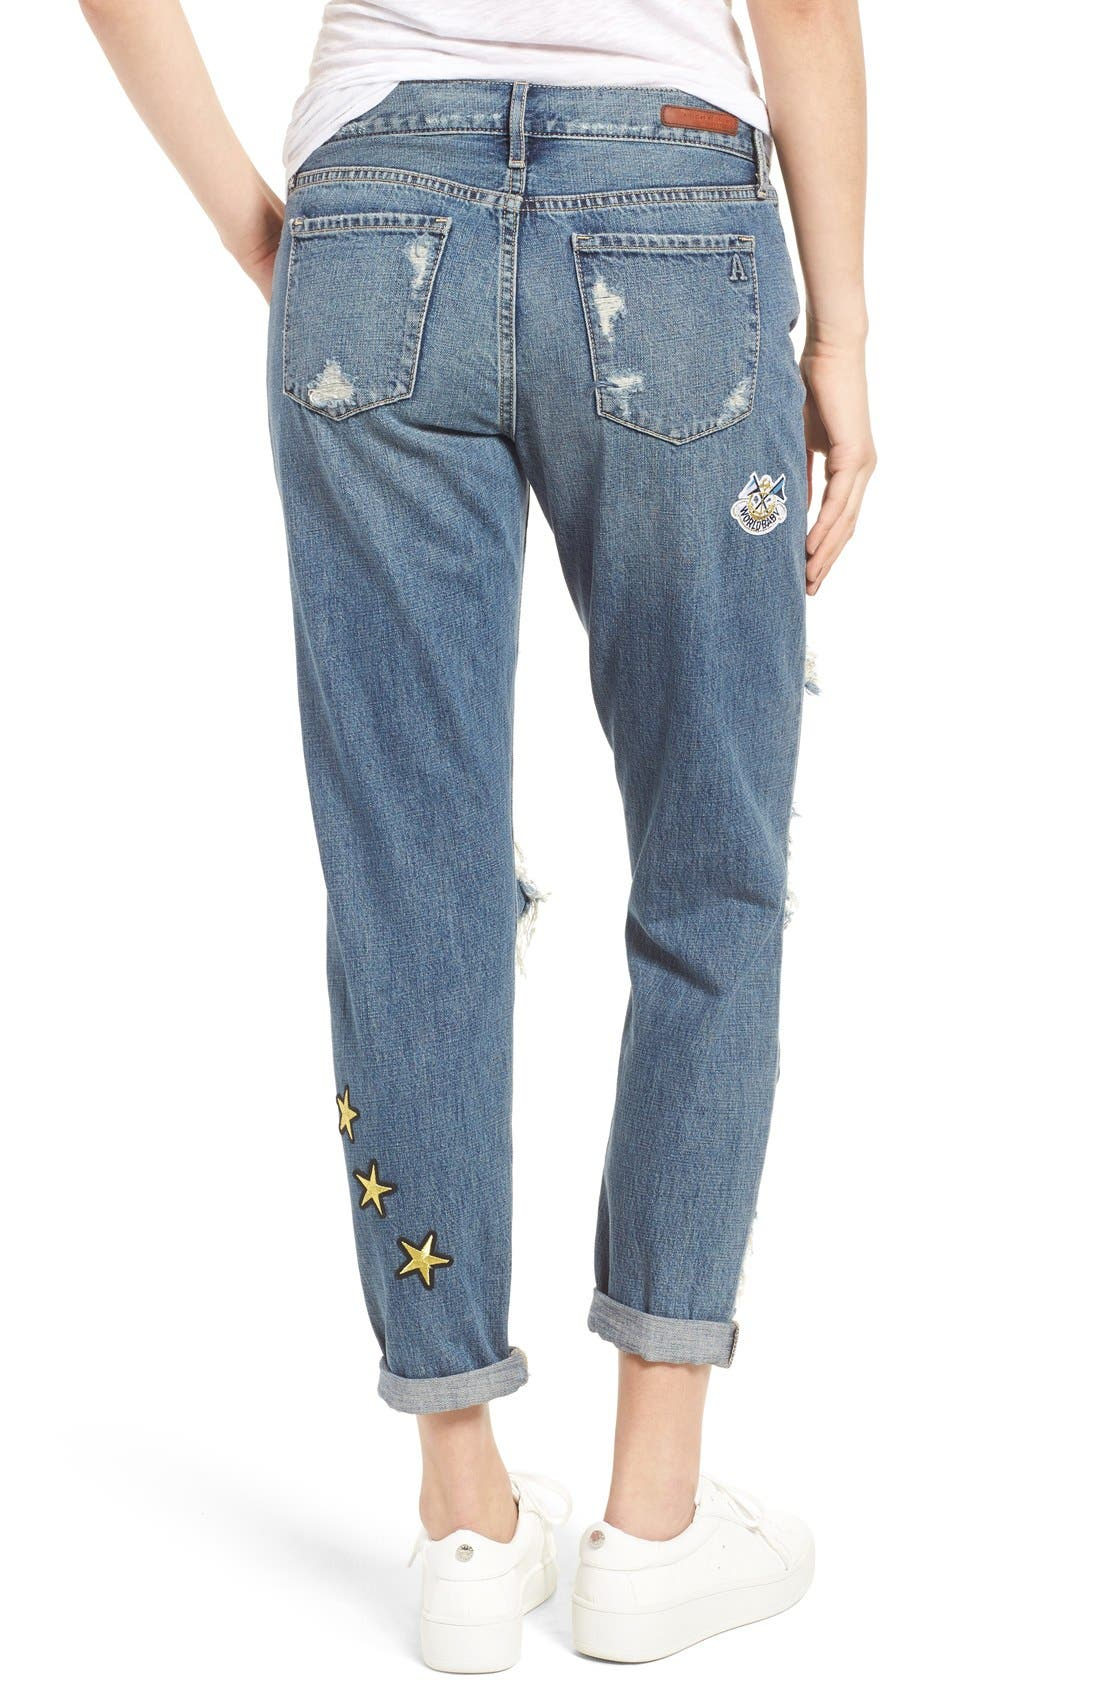 Alternate Image 3  - Articles of Society Janis Destroyed Boyfriend Jeans with Patches